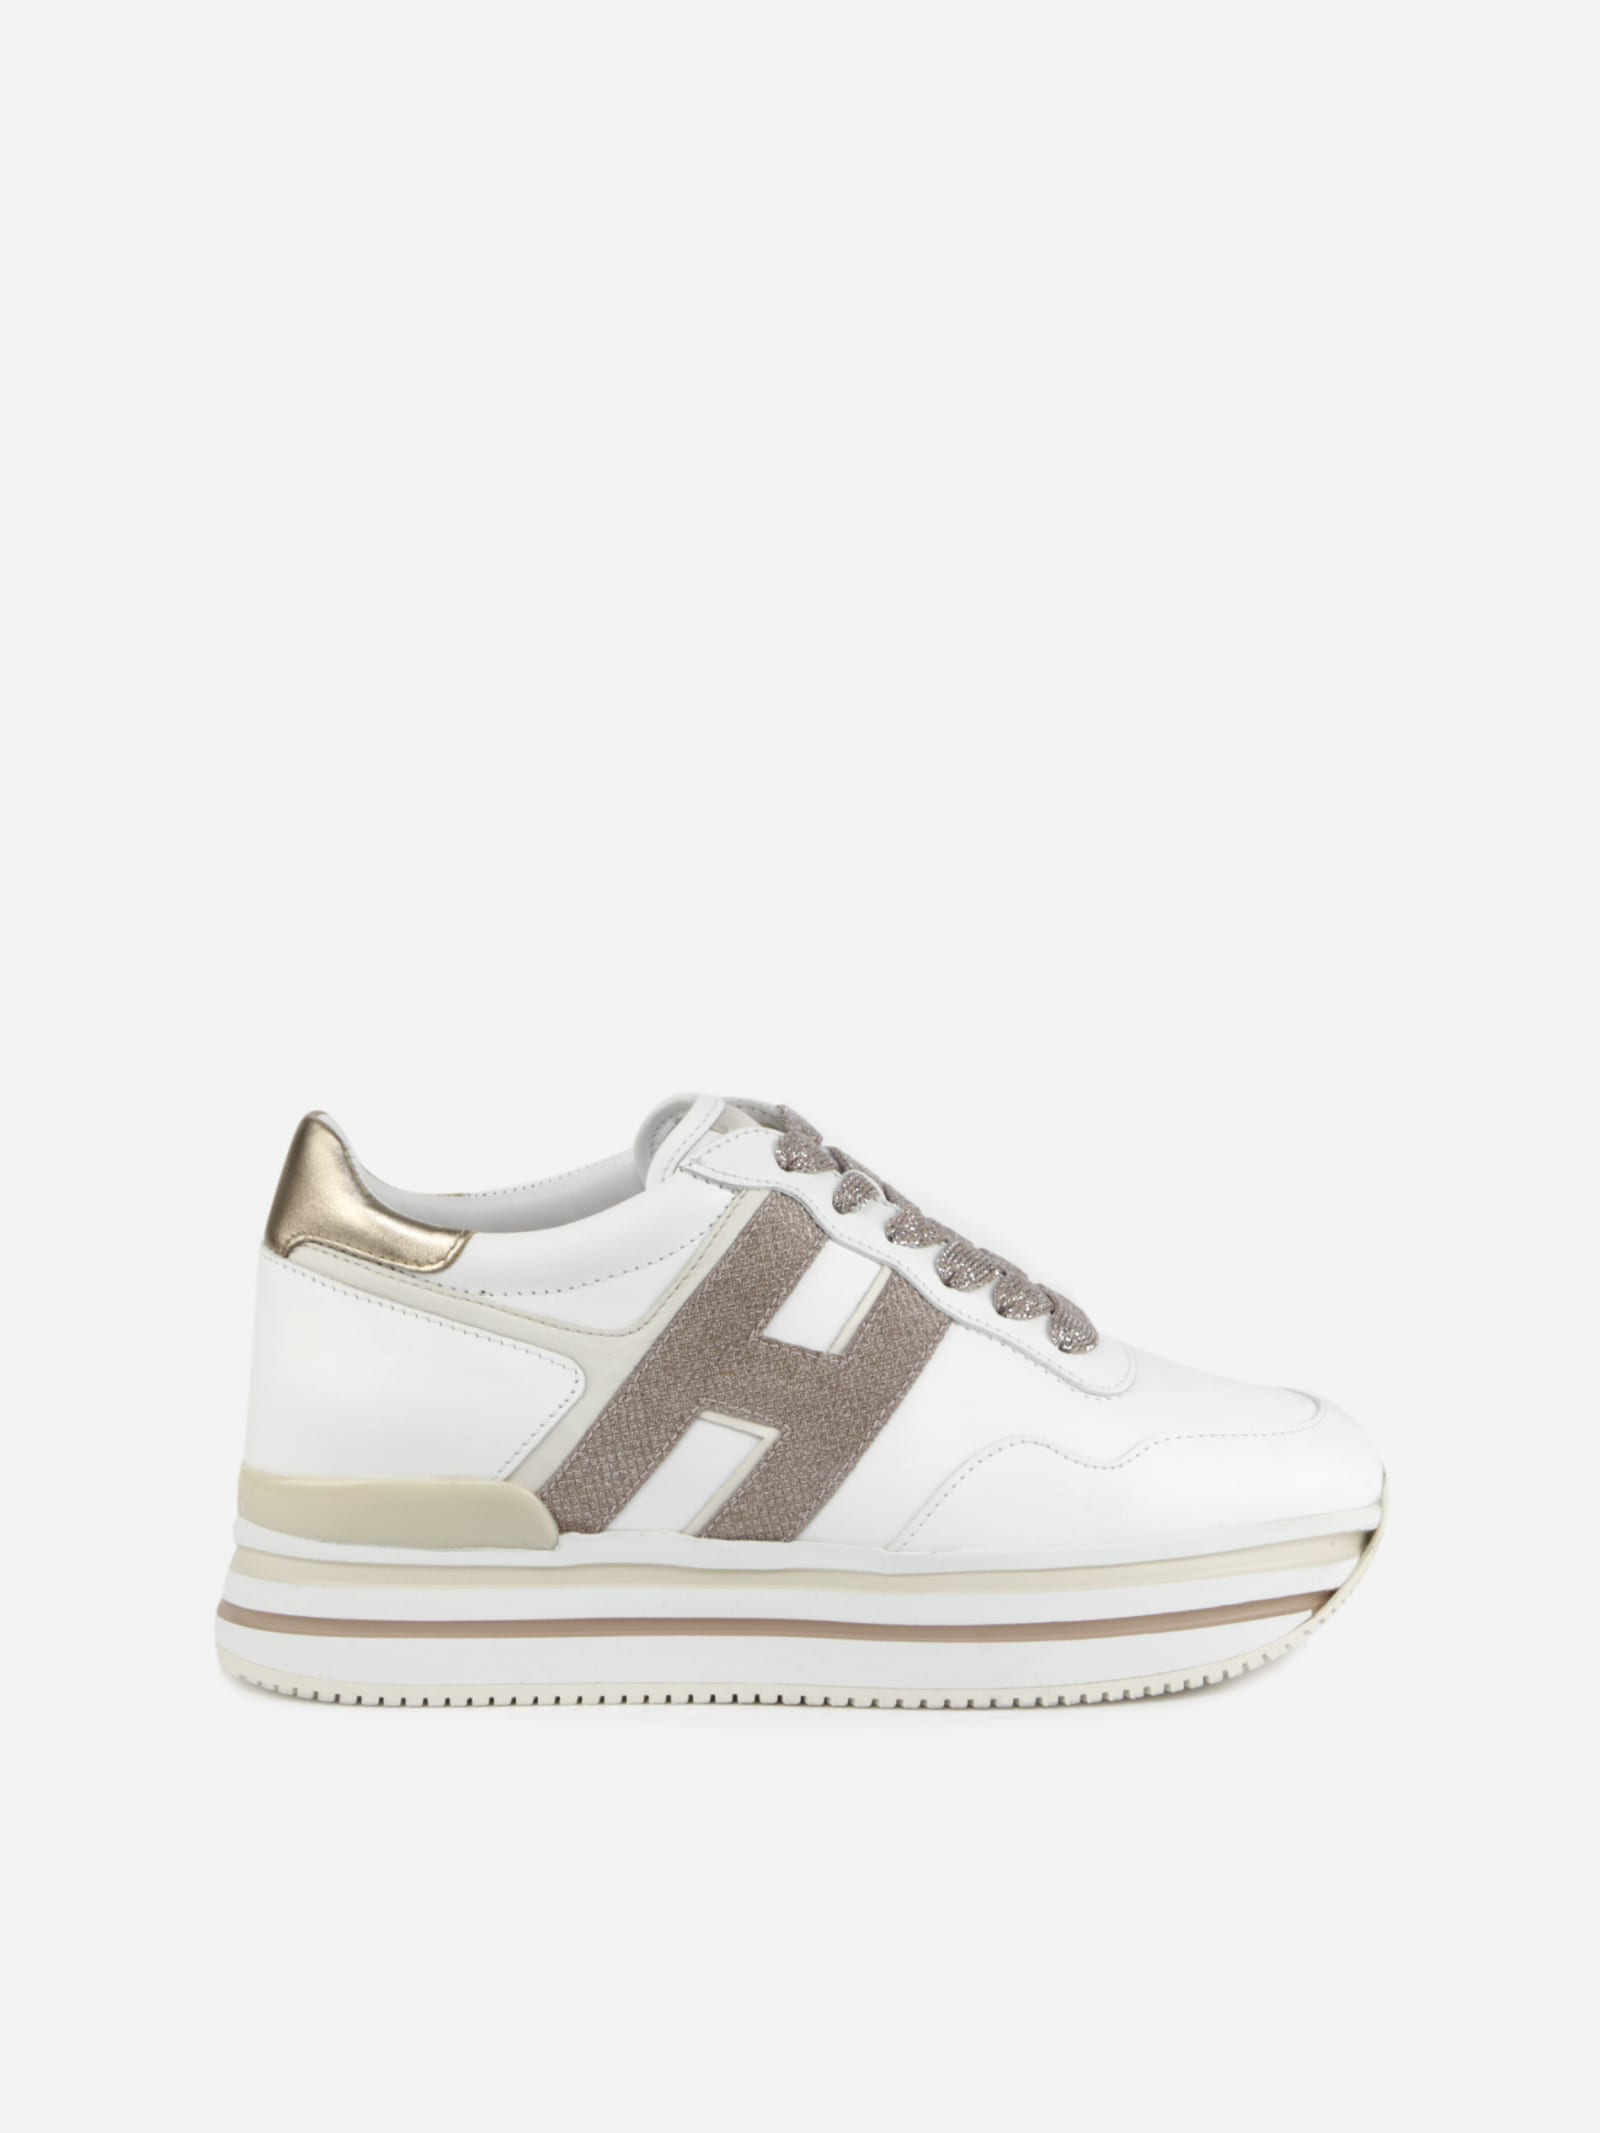 Hogan Midi H222 Sneakers In Leather